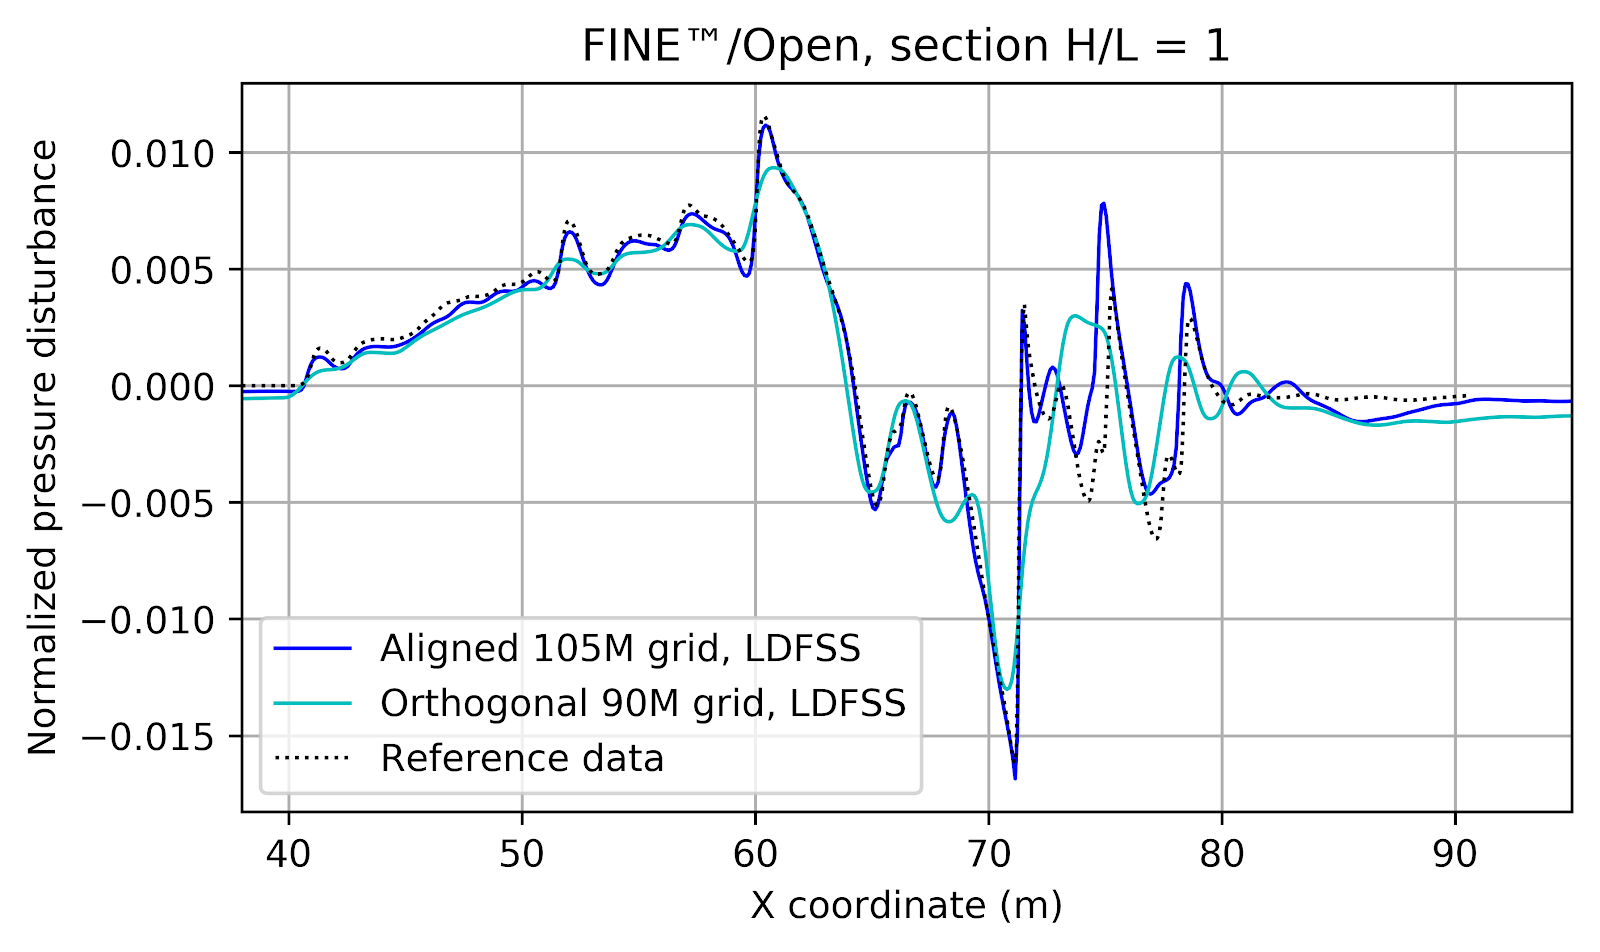 Figure 10: Comparison of normalized pressure disturbance profile between 90M orthogonal and 105M aligned meshes at the location corresponding to 1 length below the airplane